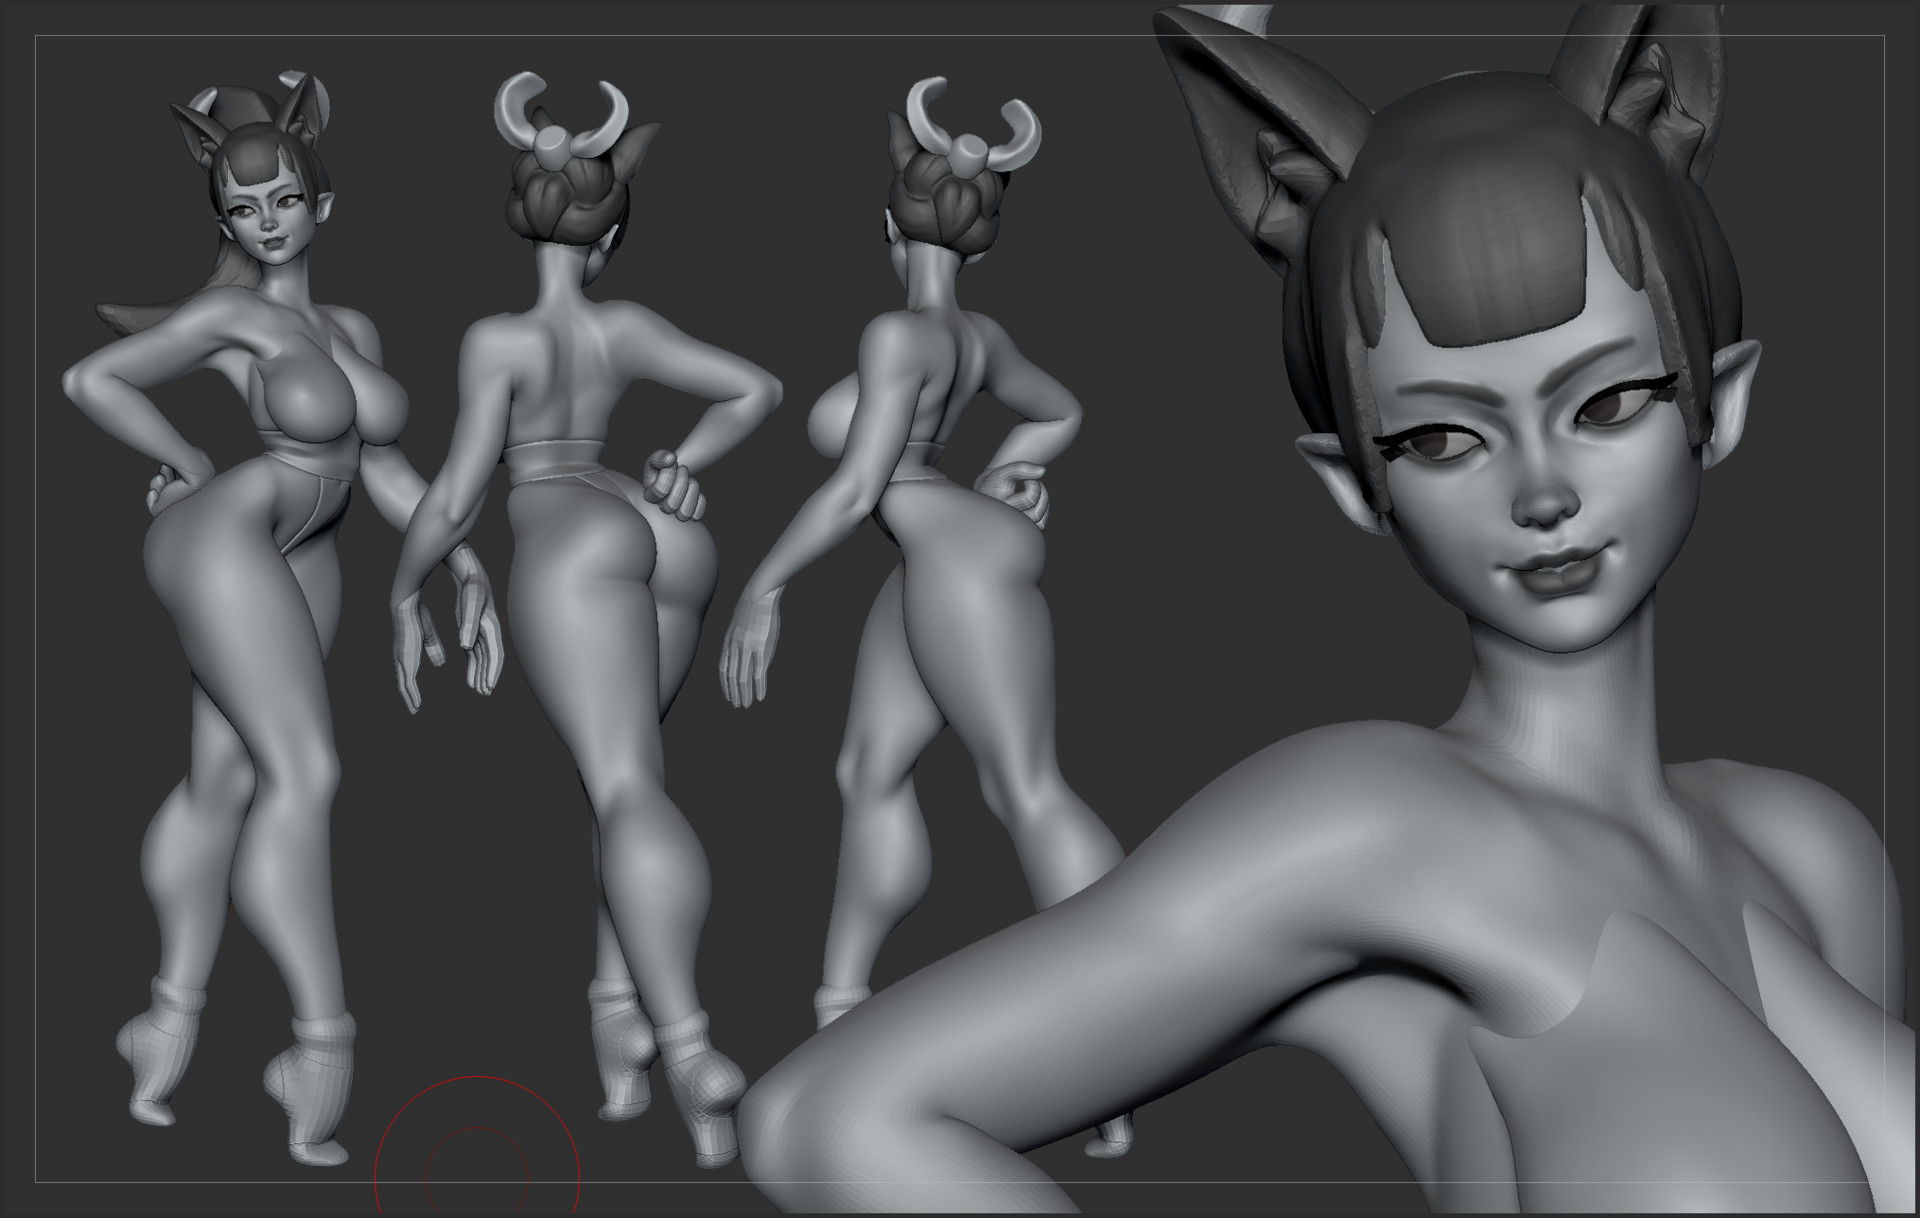 Mercurial forge zbrush 2018 09 24 02 15 09